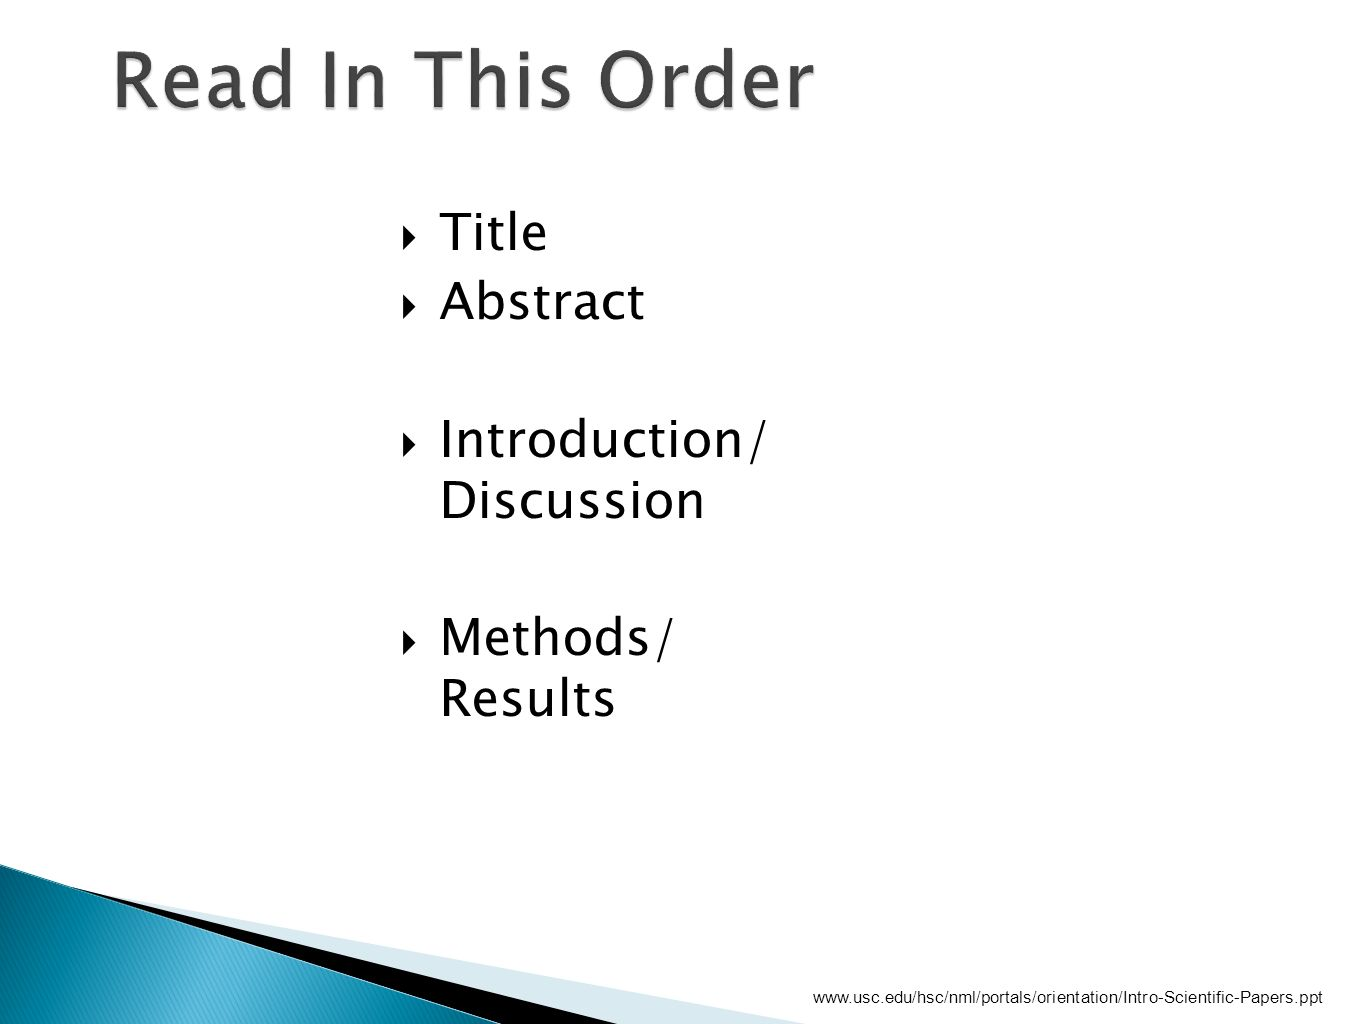 003 How To Read Research Papers Ppt Paper Slide 9 Fascinating Full